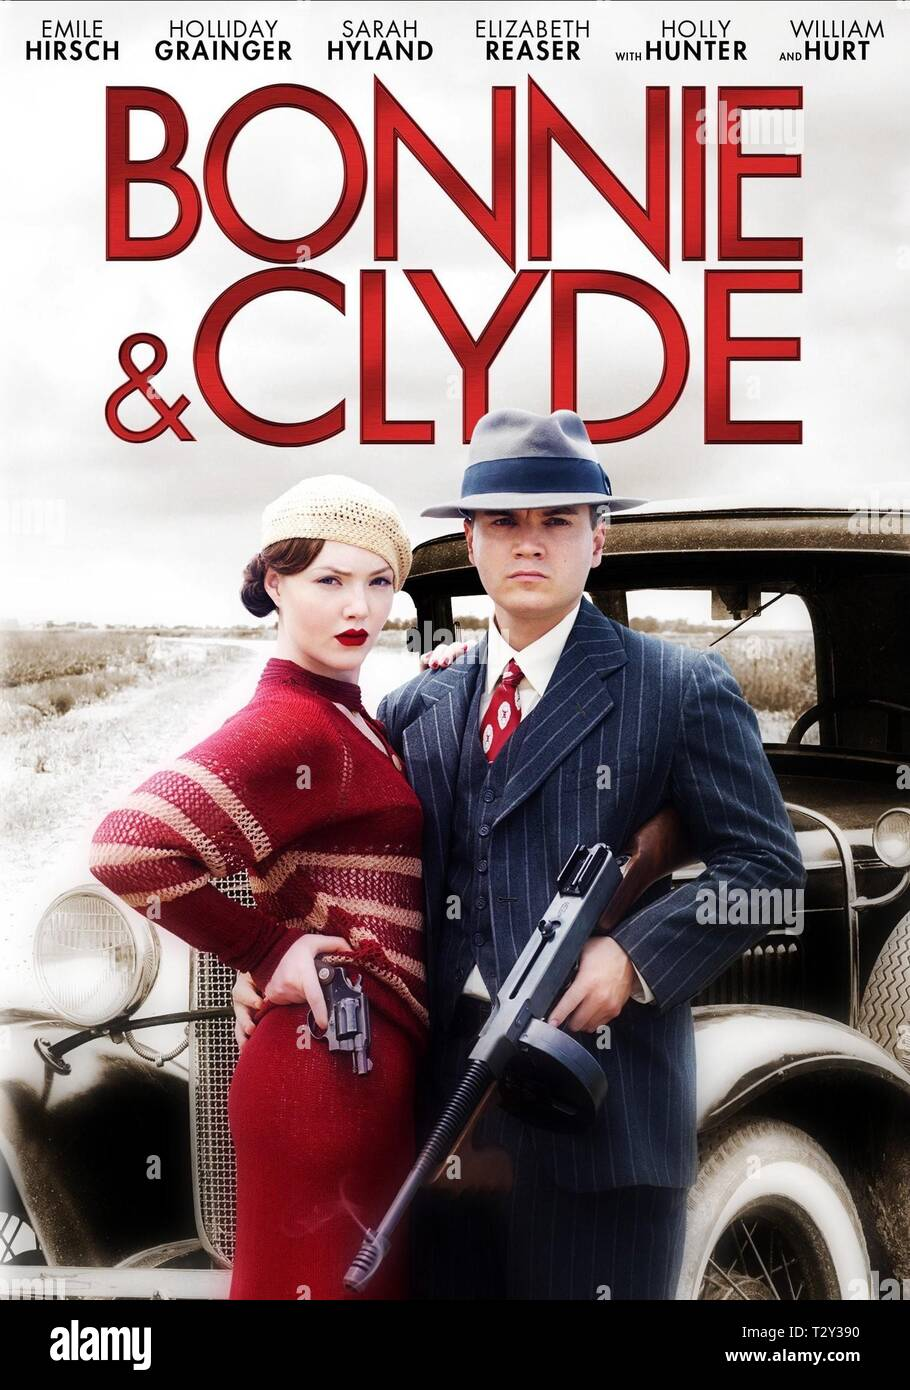 HOLLIDAY GRAINGER, EMILE HIRSCH, BONNIE AND CLYDE, 2013 - Stock Image